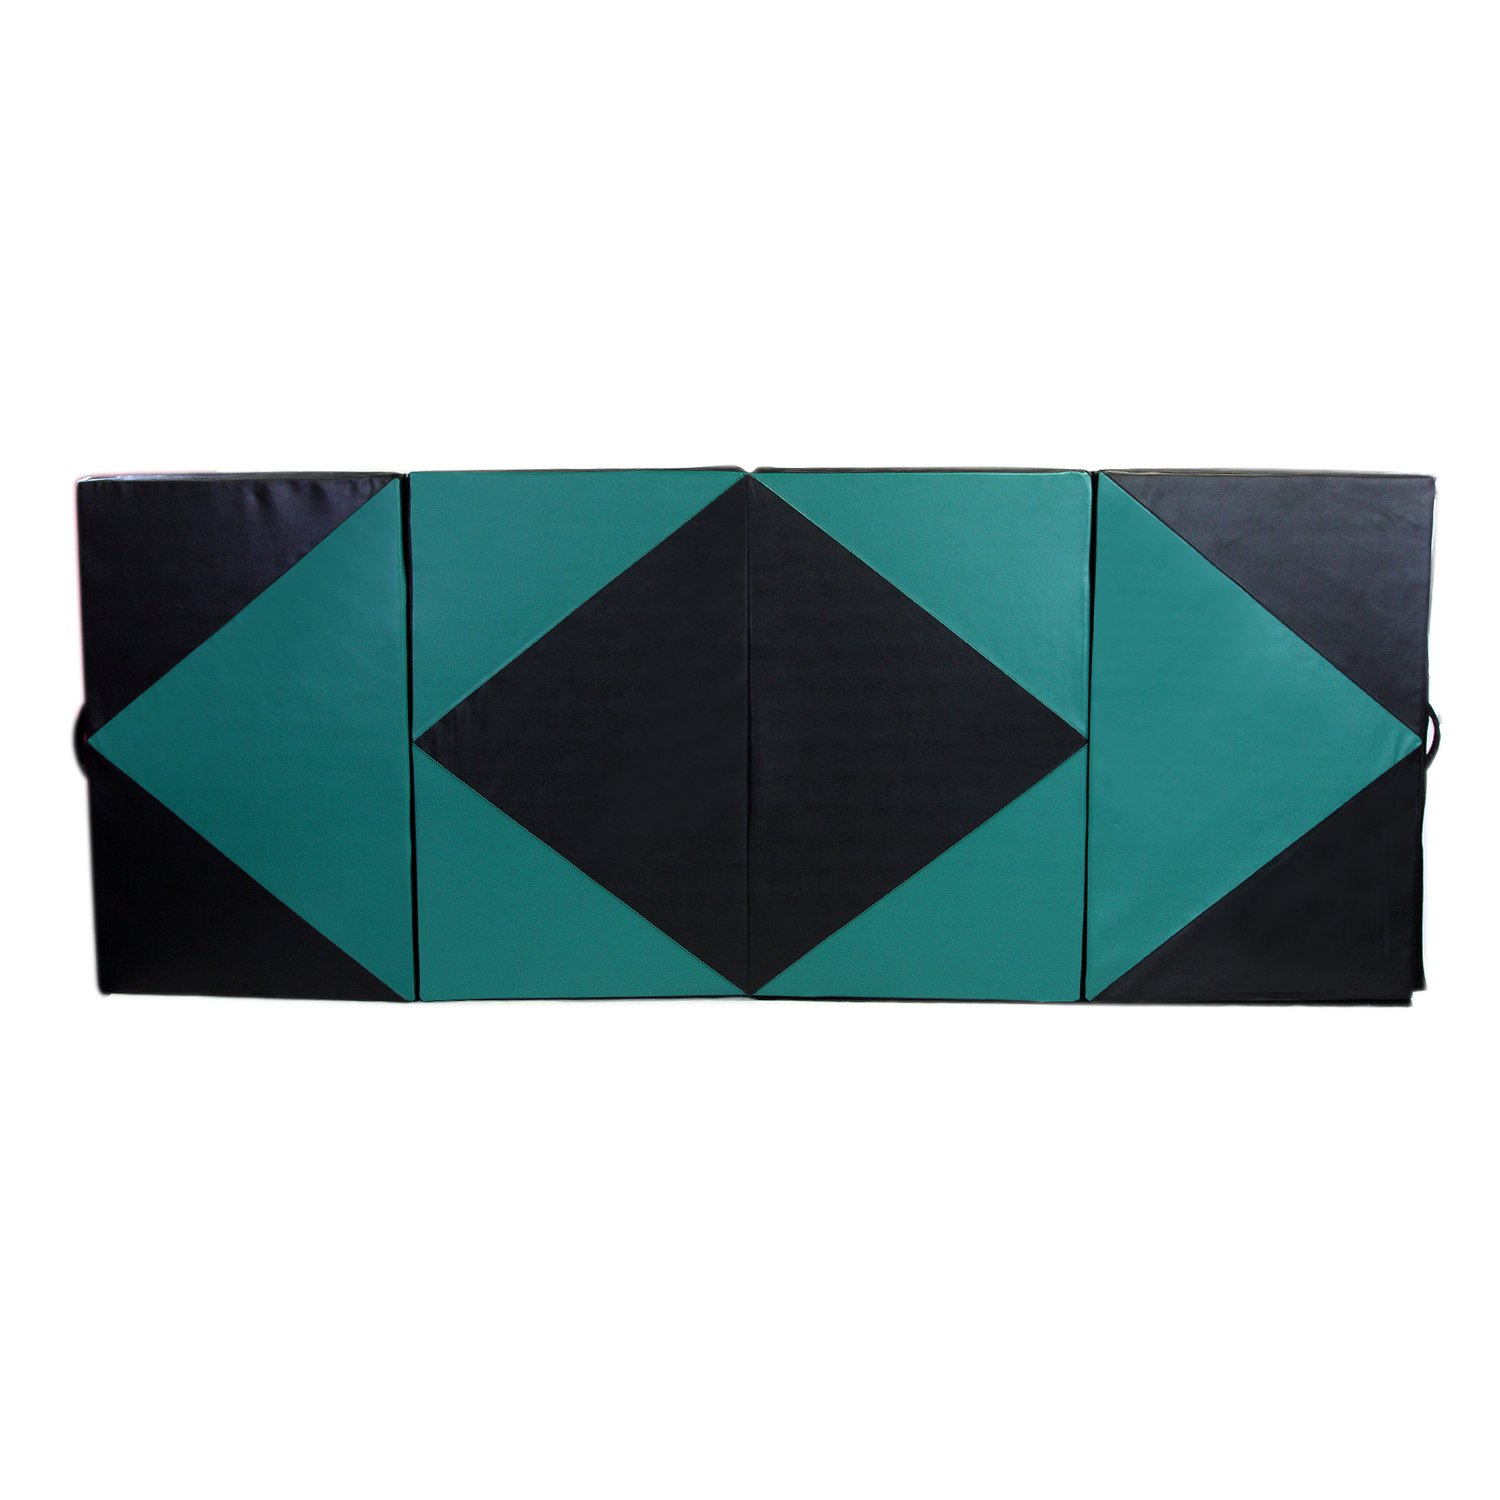 4'X8'X2 Gymnastic Mat Durable Folding Gymnastic Mat Tumbling Exercise Yoga Fitness PU Leather for Kids Ladies